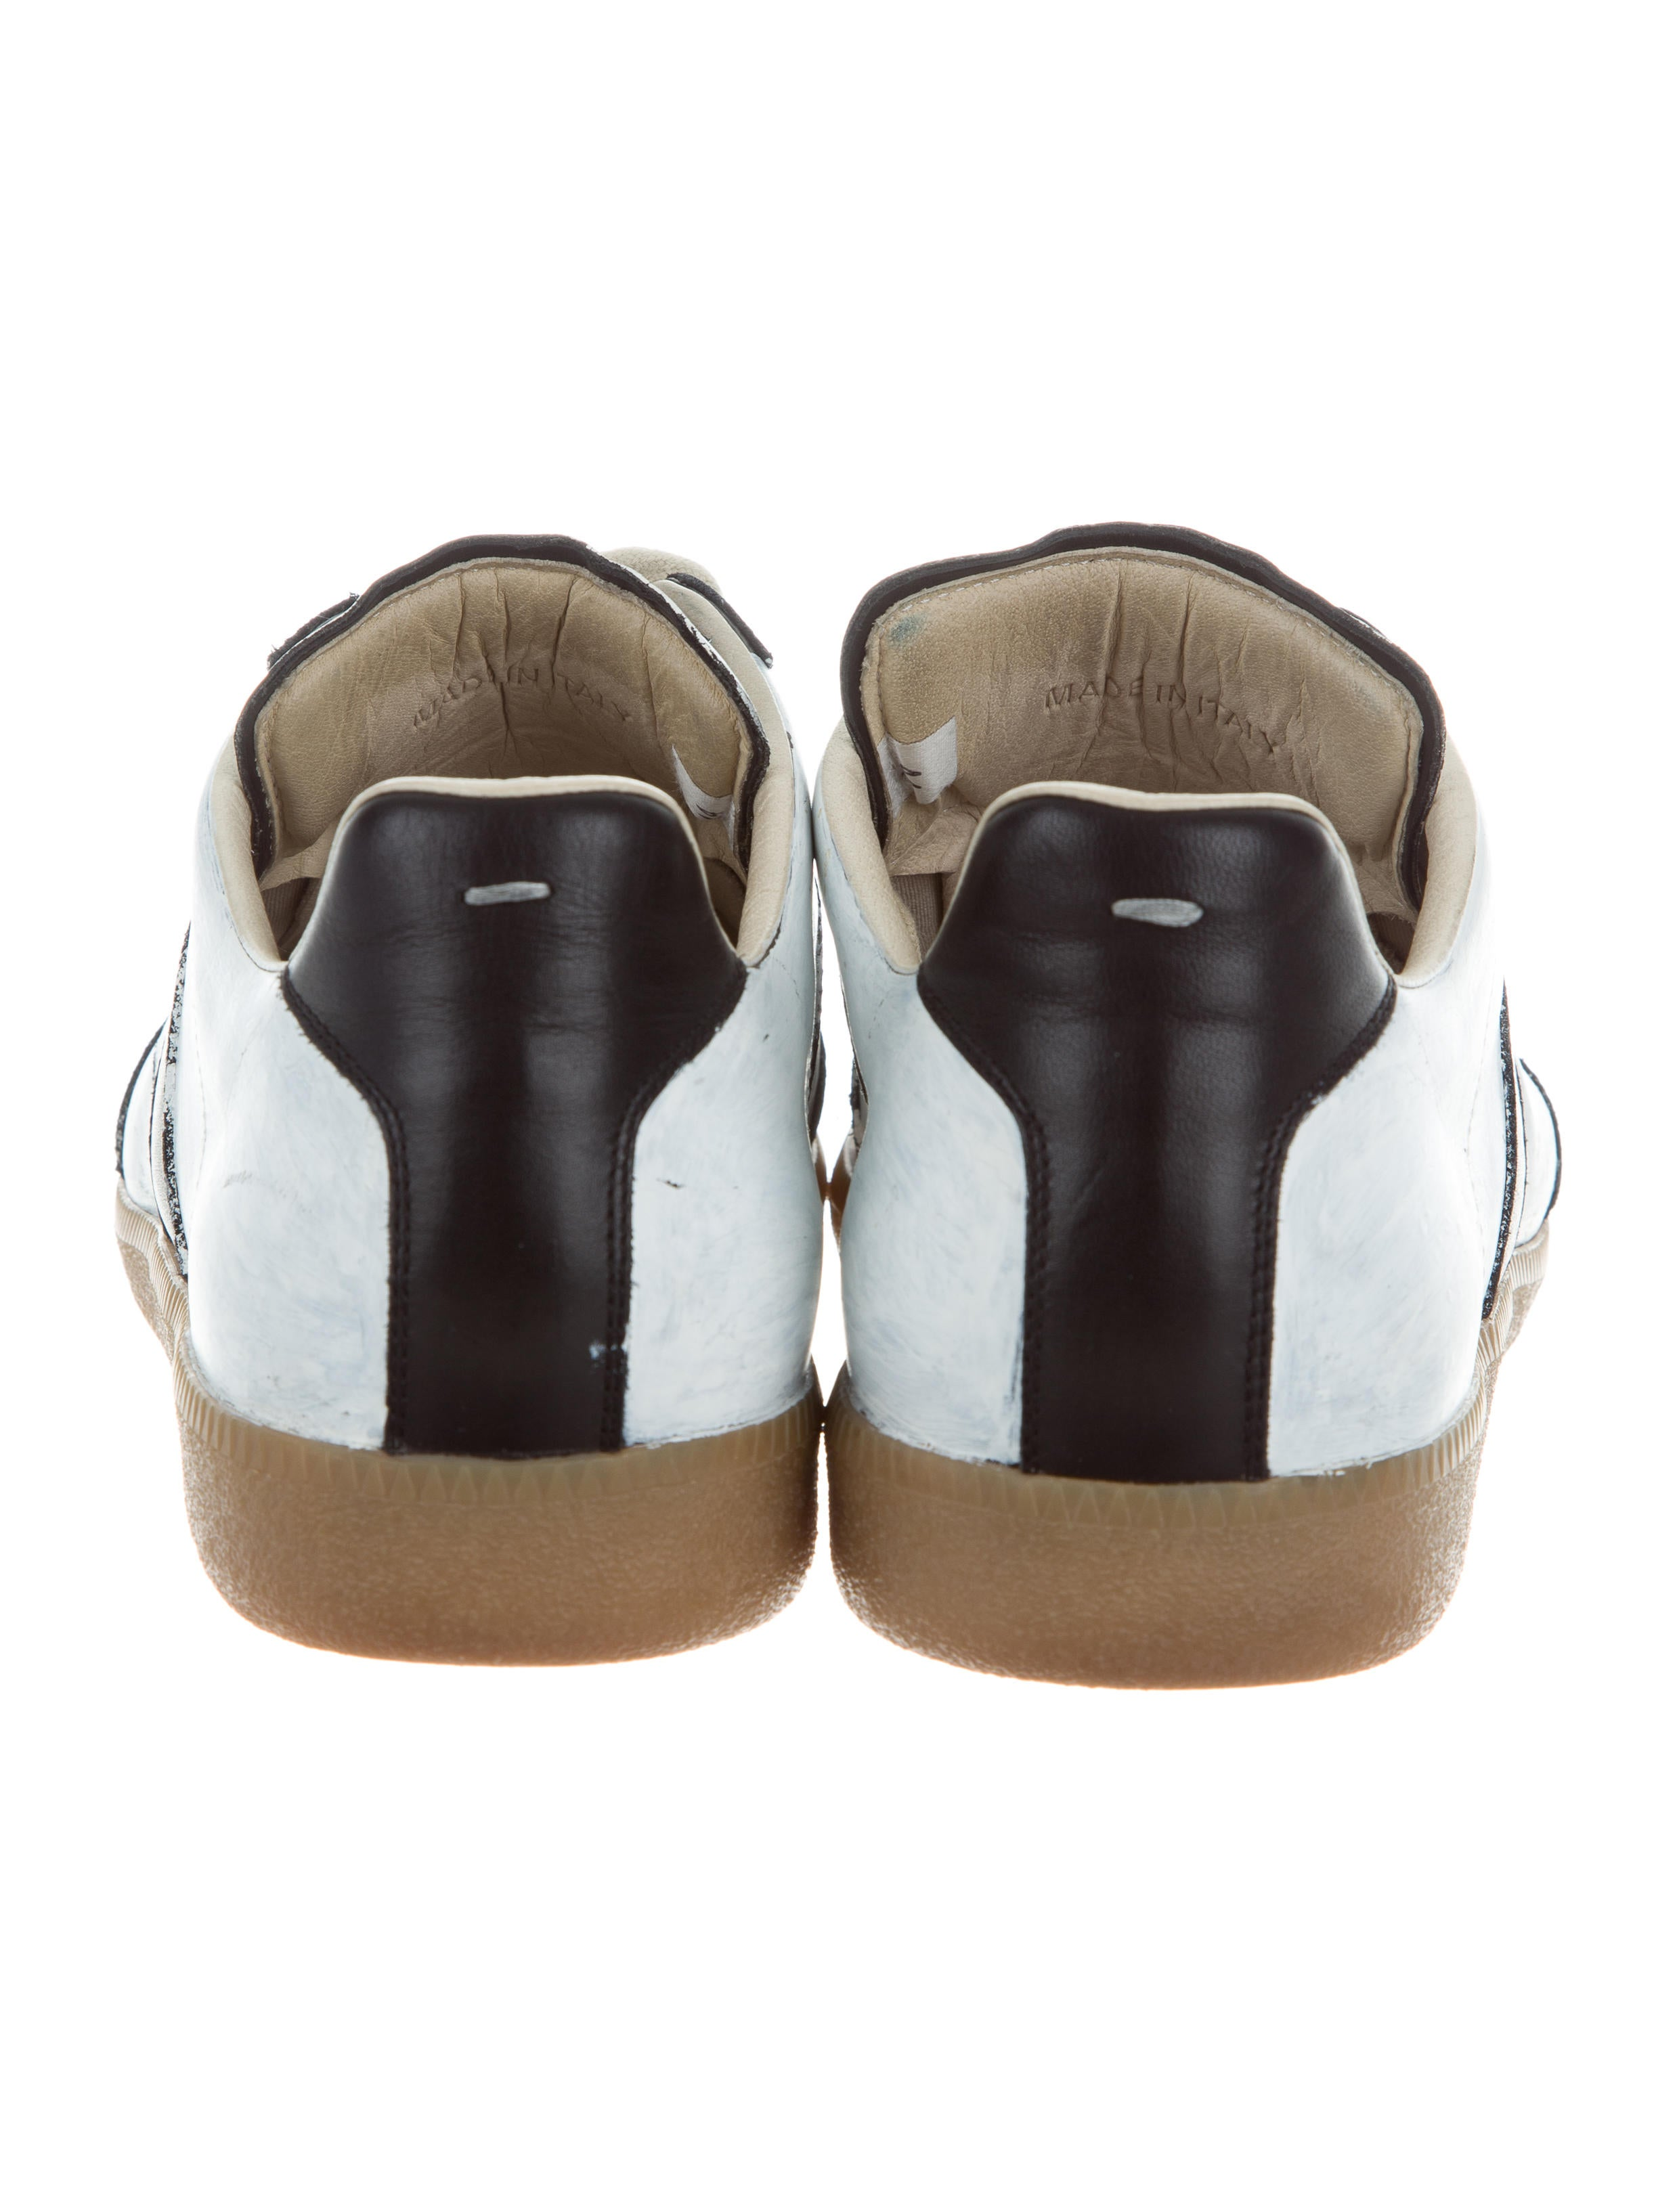 Maison margiela leather replica sneakers shoes for Replica maison martin margiela